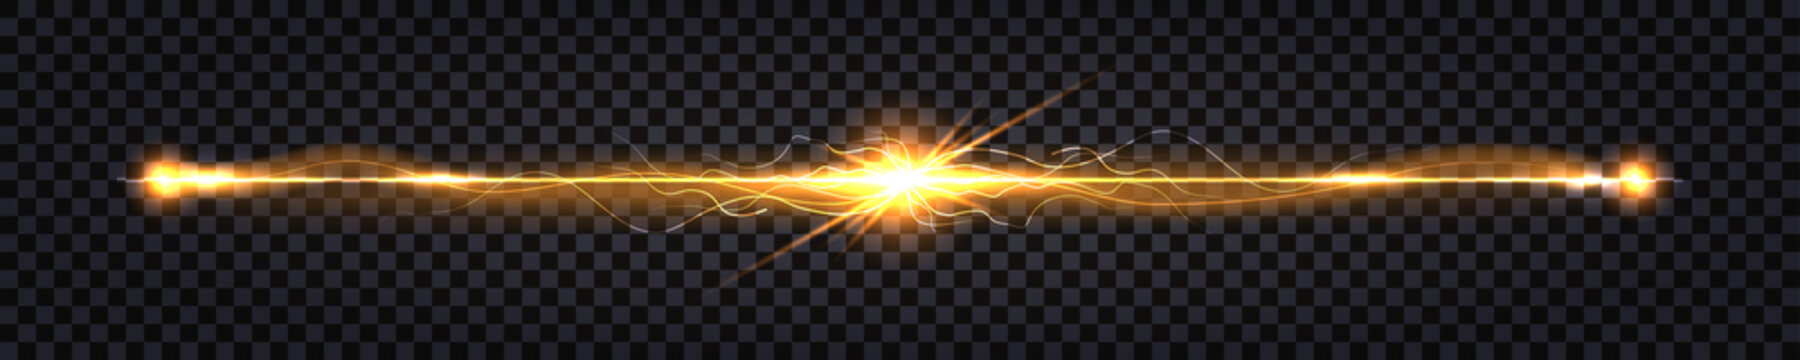 Electric discharge shock effect. Yellow light flash, electrical collision with two impulse burst. Glowing thunder bolt effect, line wire isolated on transparent background. Vector illustration